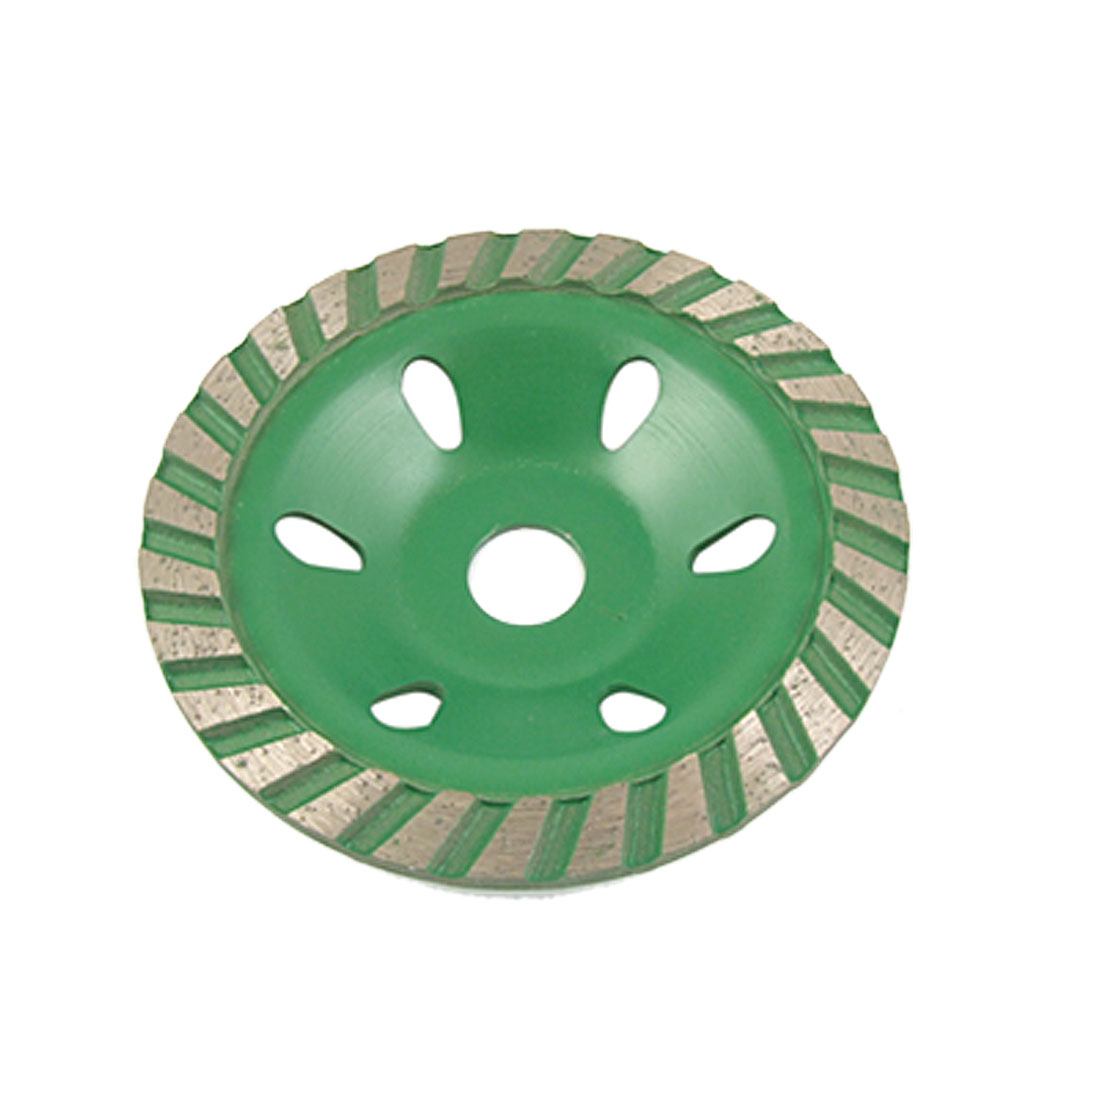 100mm Polishing Ceramic Concrete Grinding Disc Green Gray